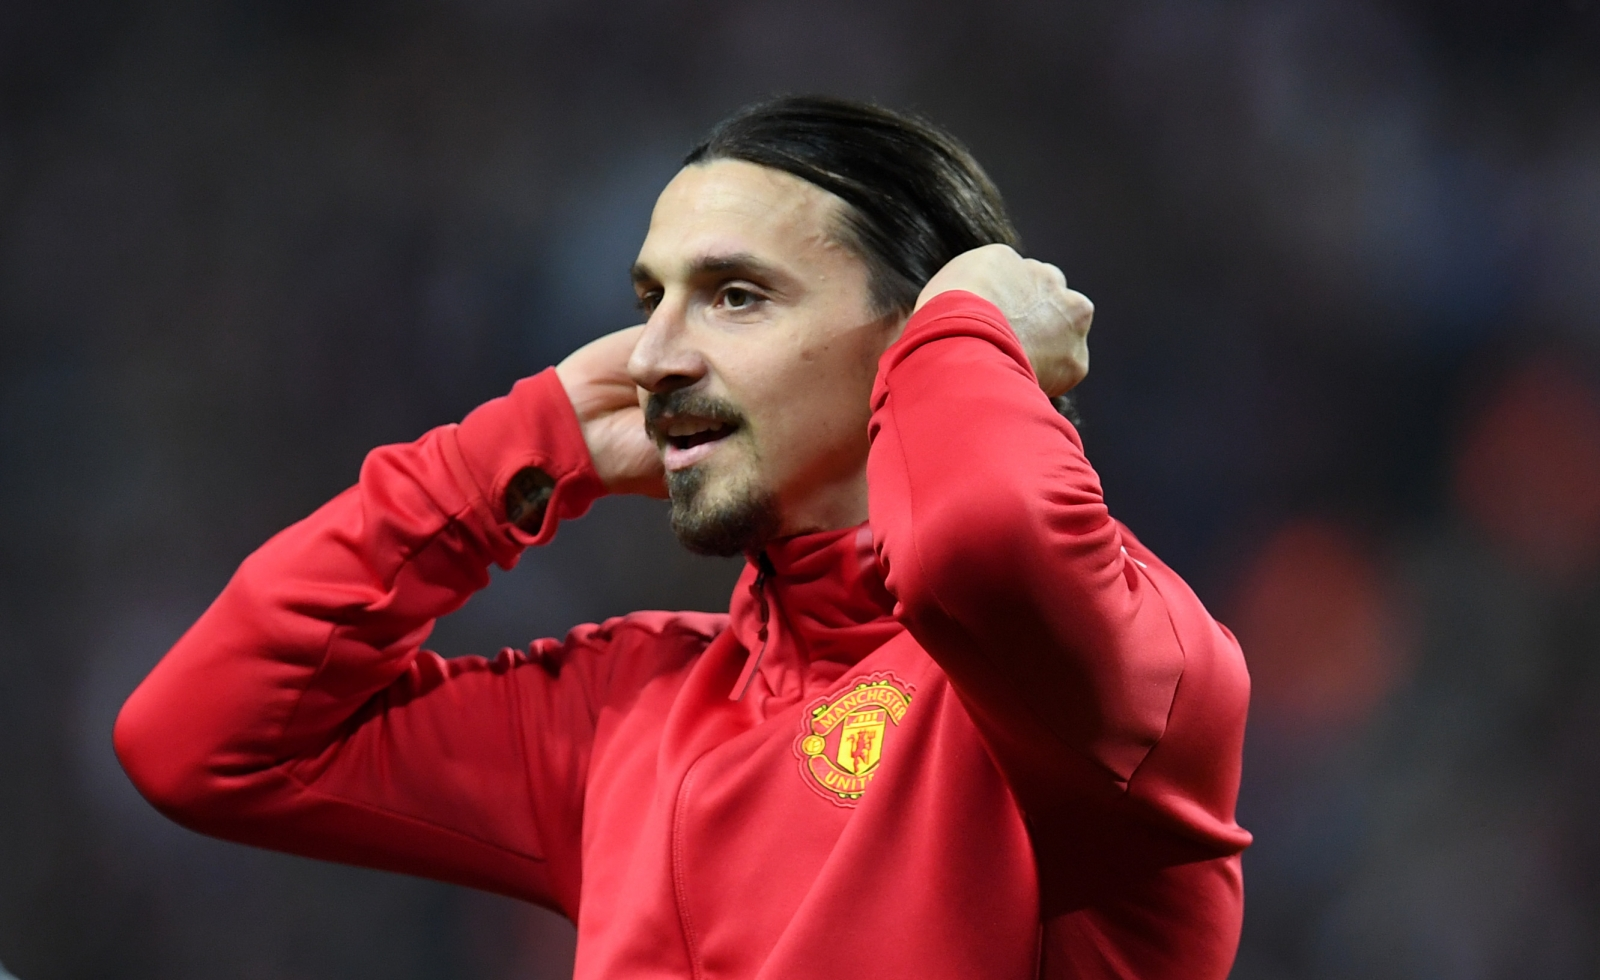 Zlatan Ibrahimovic to talk with Manchester United, consider offers by rivals